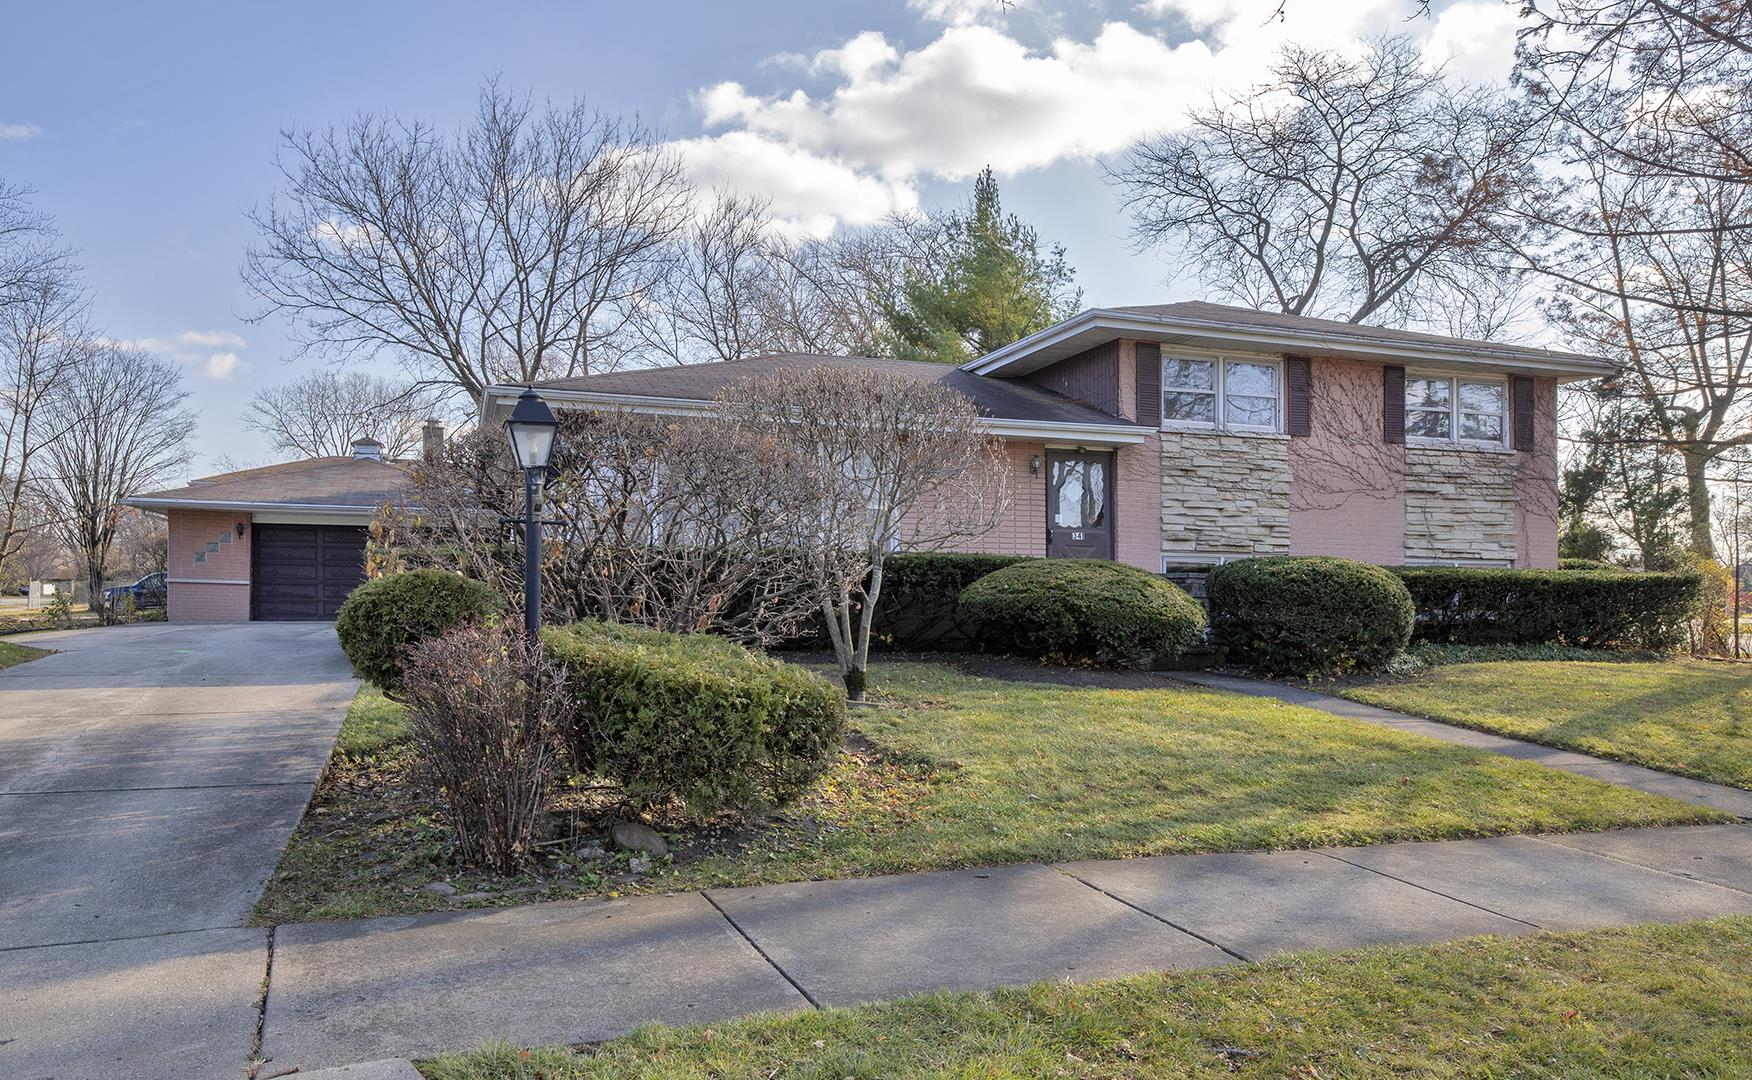 341 Michael Manor, Glenview, IL 60025 - #: 10940743